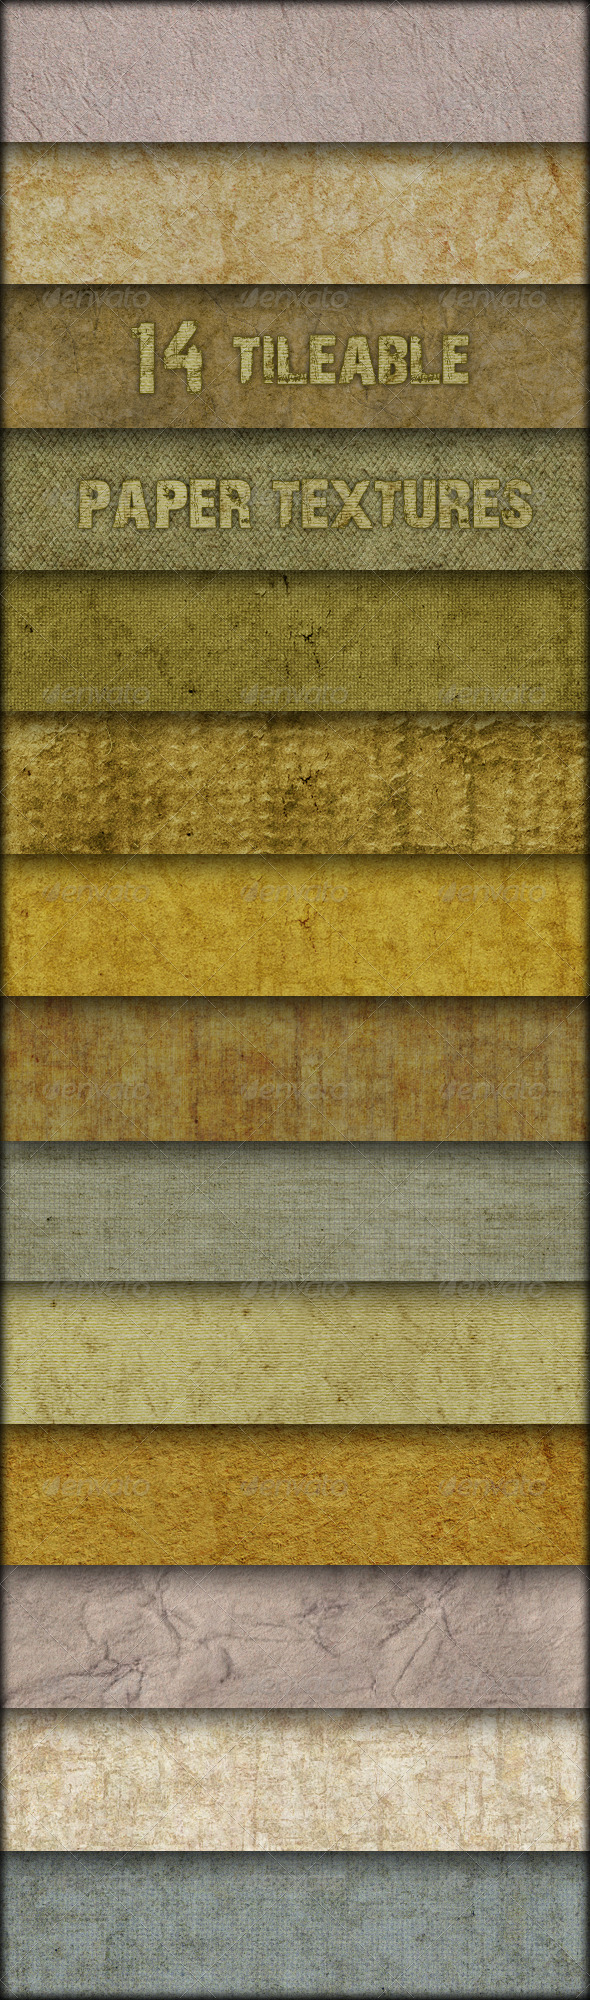 GraphicRiver 14 Tileable paper textures 147662